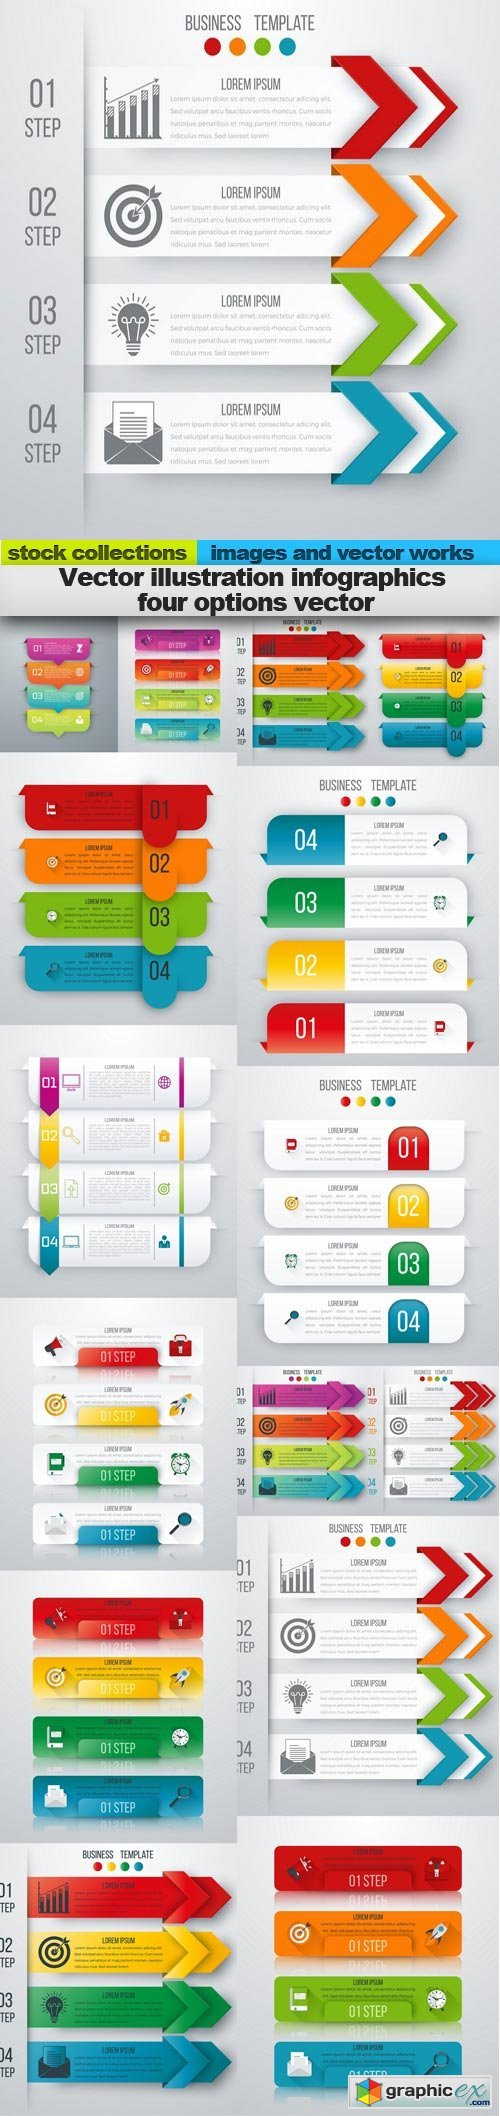 Illustration infographics four options vector, 15 x EPS